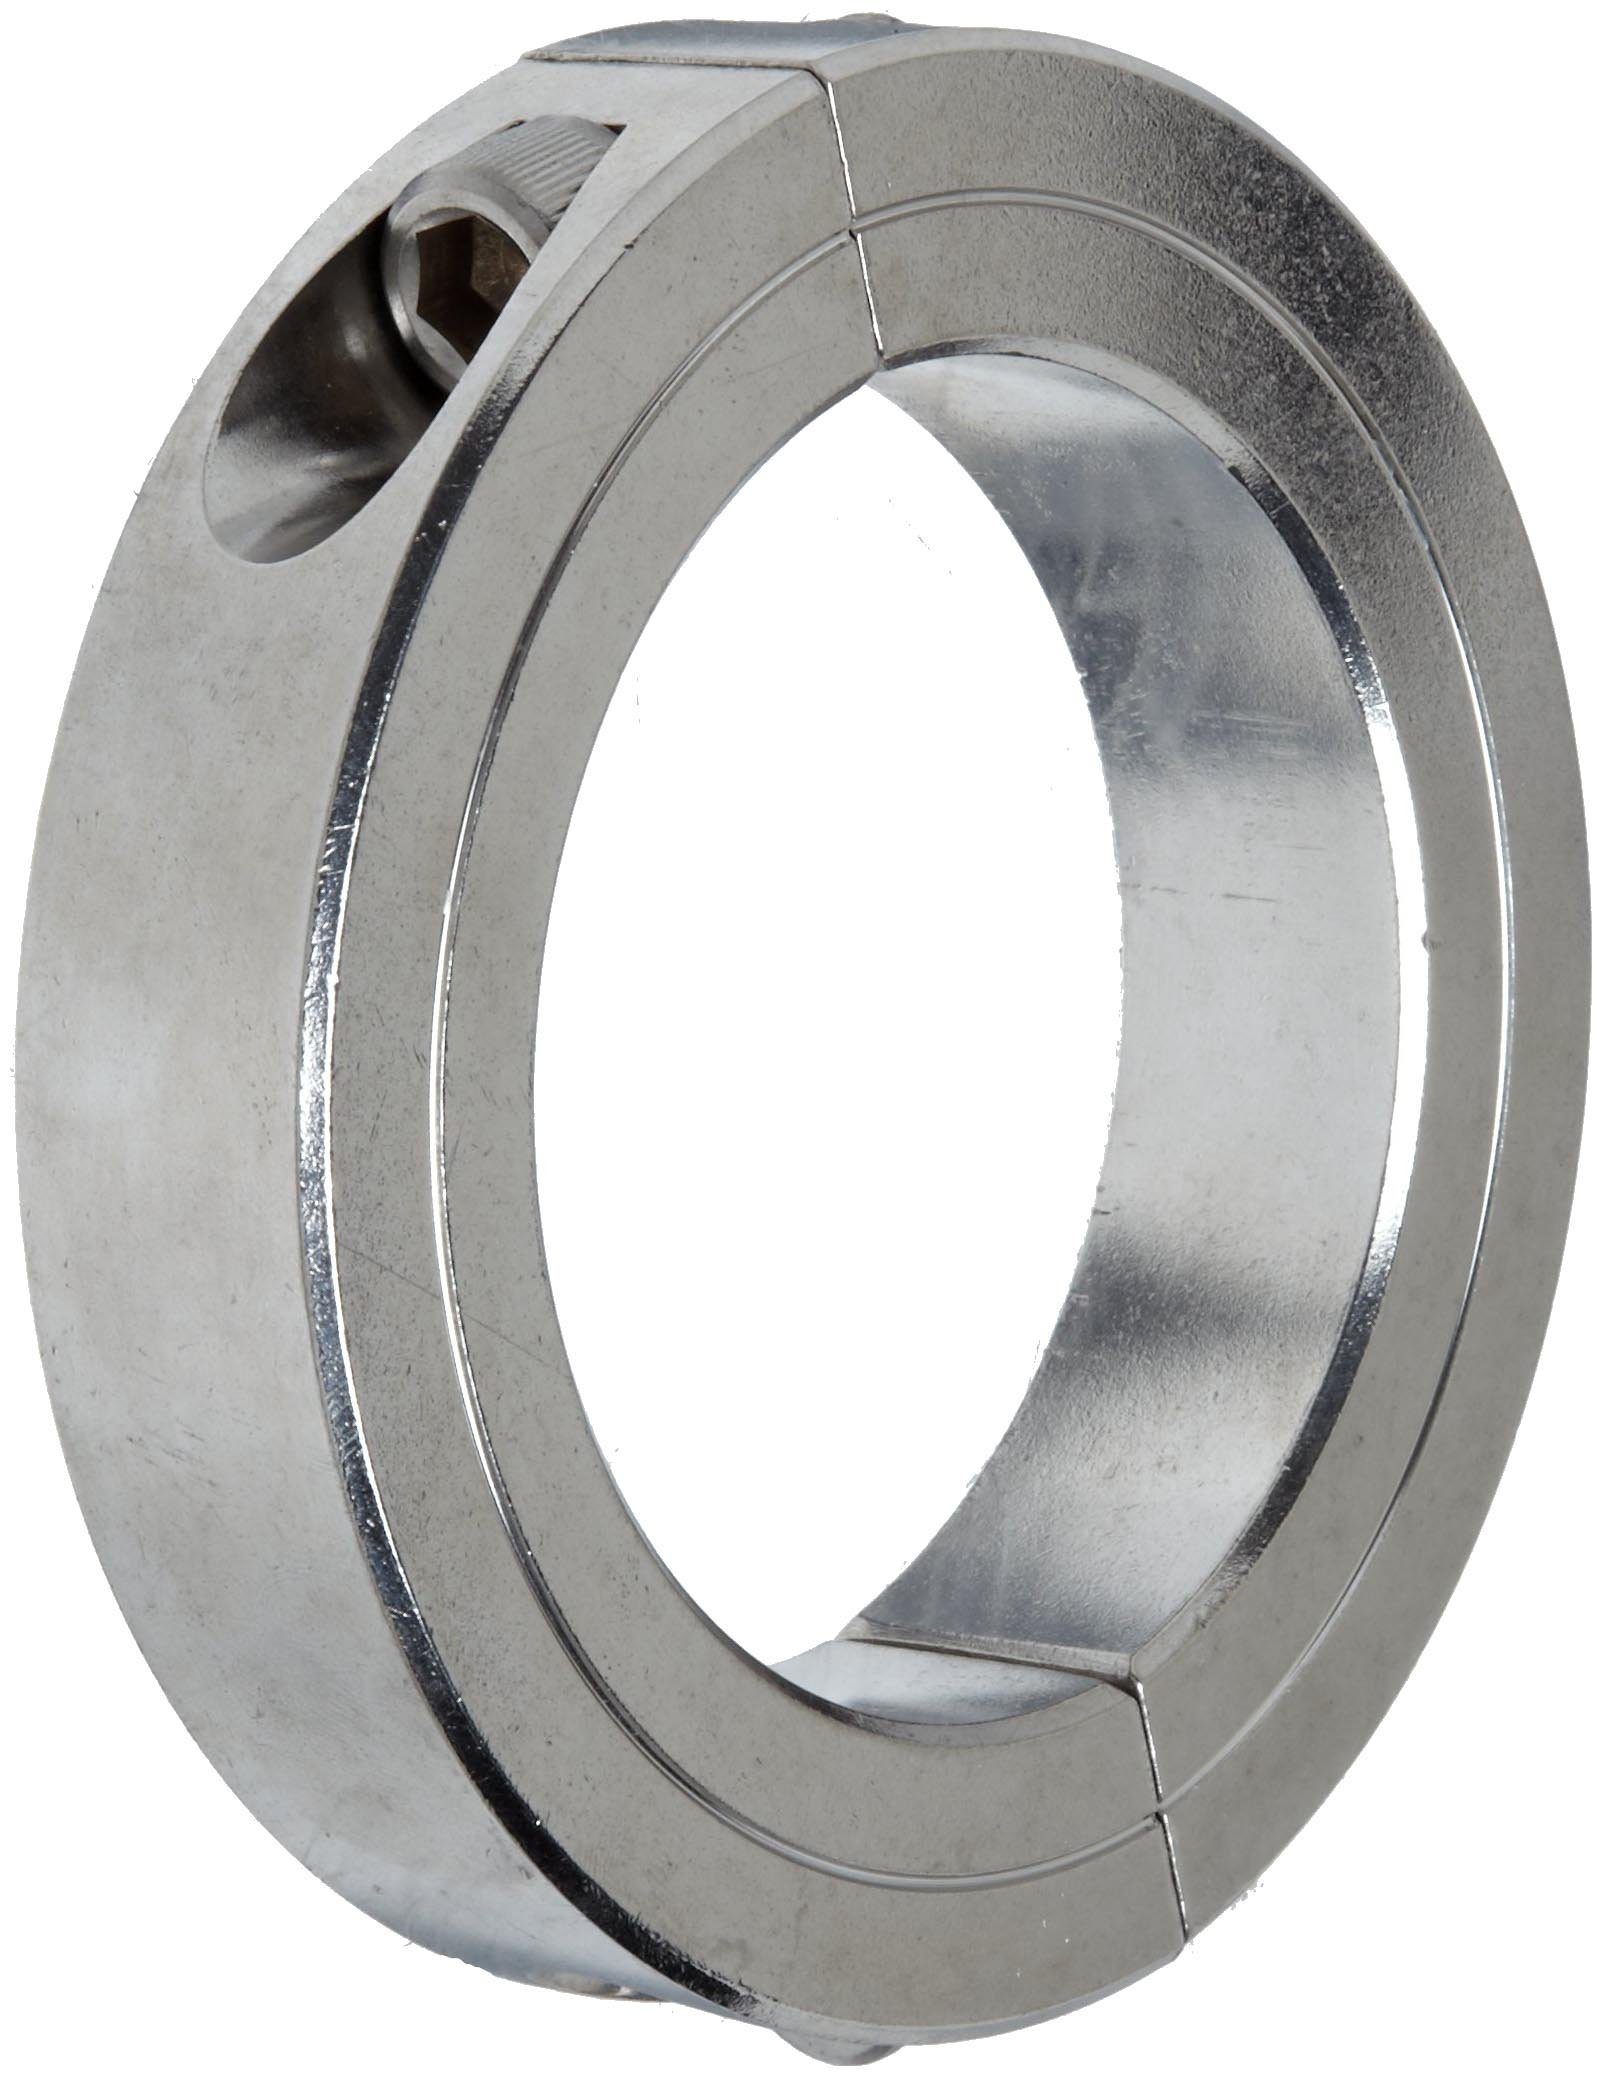 Climax Metal 2C-087-S T303 Stainless Steel Two-Piece Clamping Collar, 7/8'' Bore Size, 1-5/8'' OD, With 1/4-28 x 5/8 Set Screw